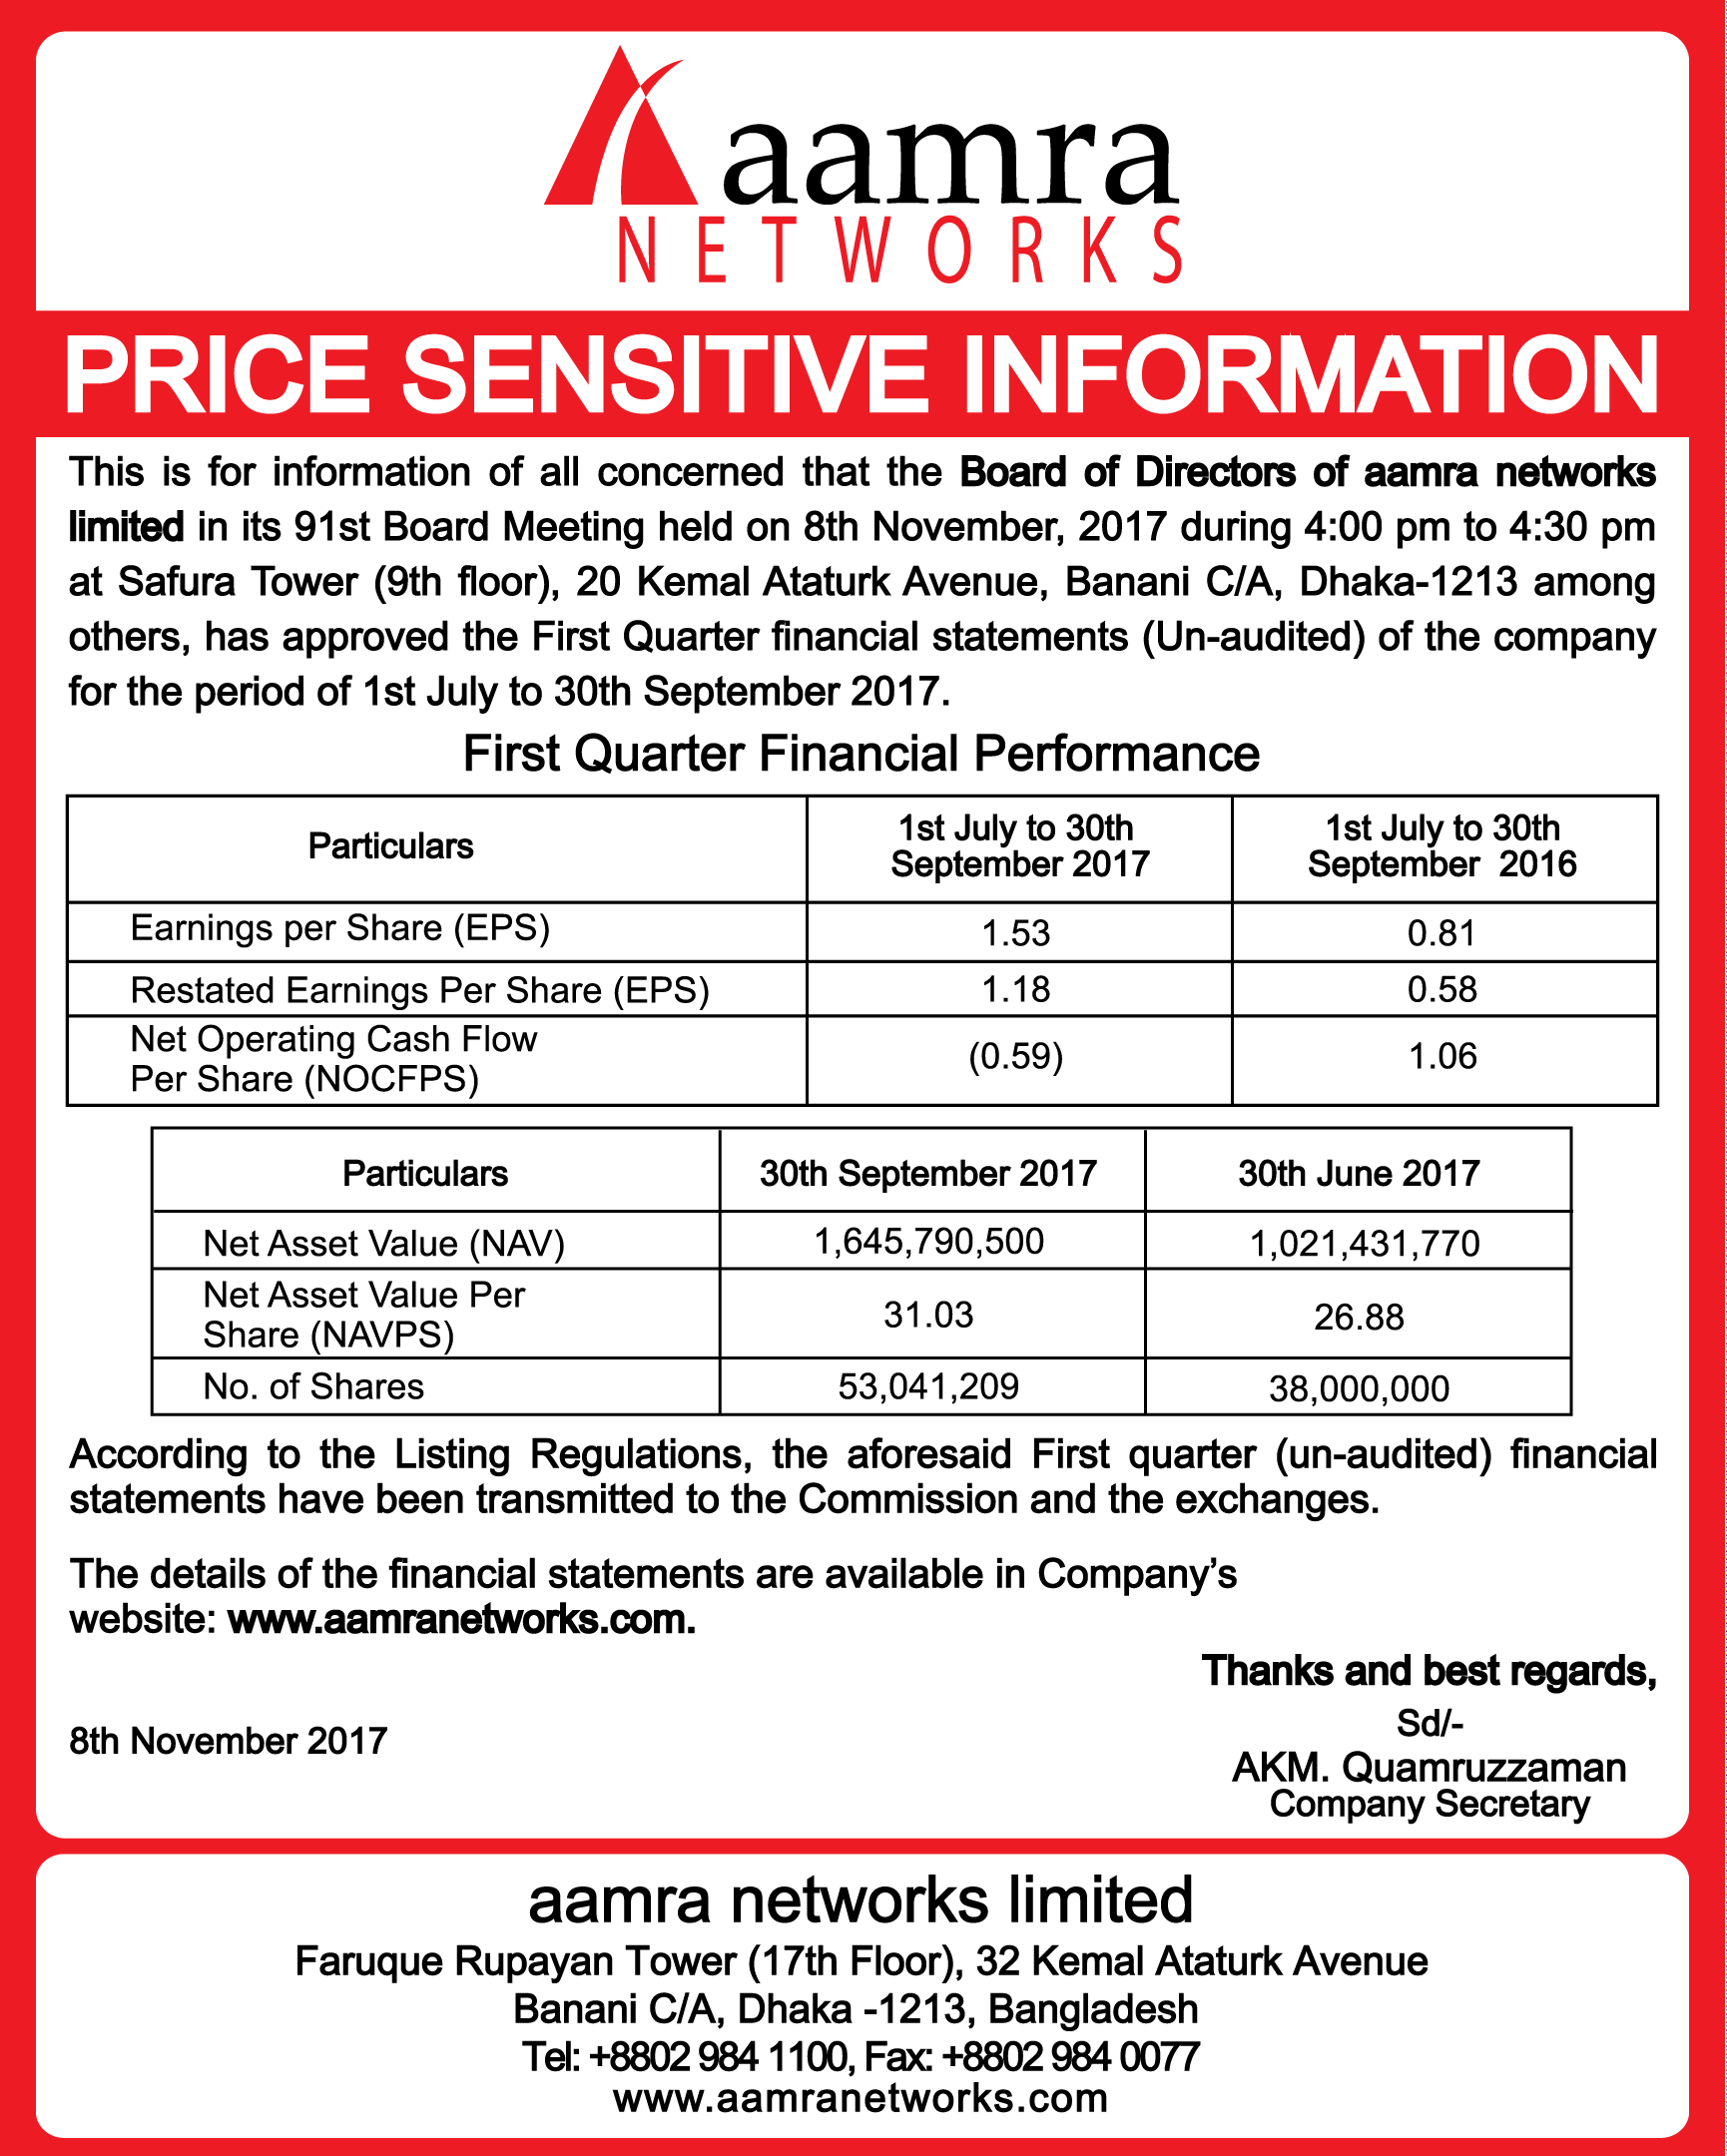 Price-Sensitive-Information-Nov-2017